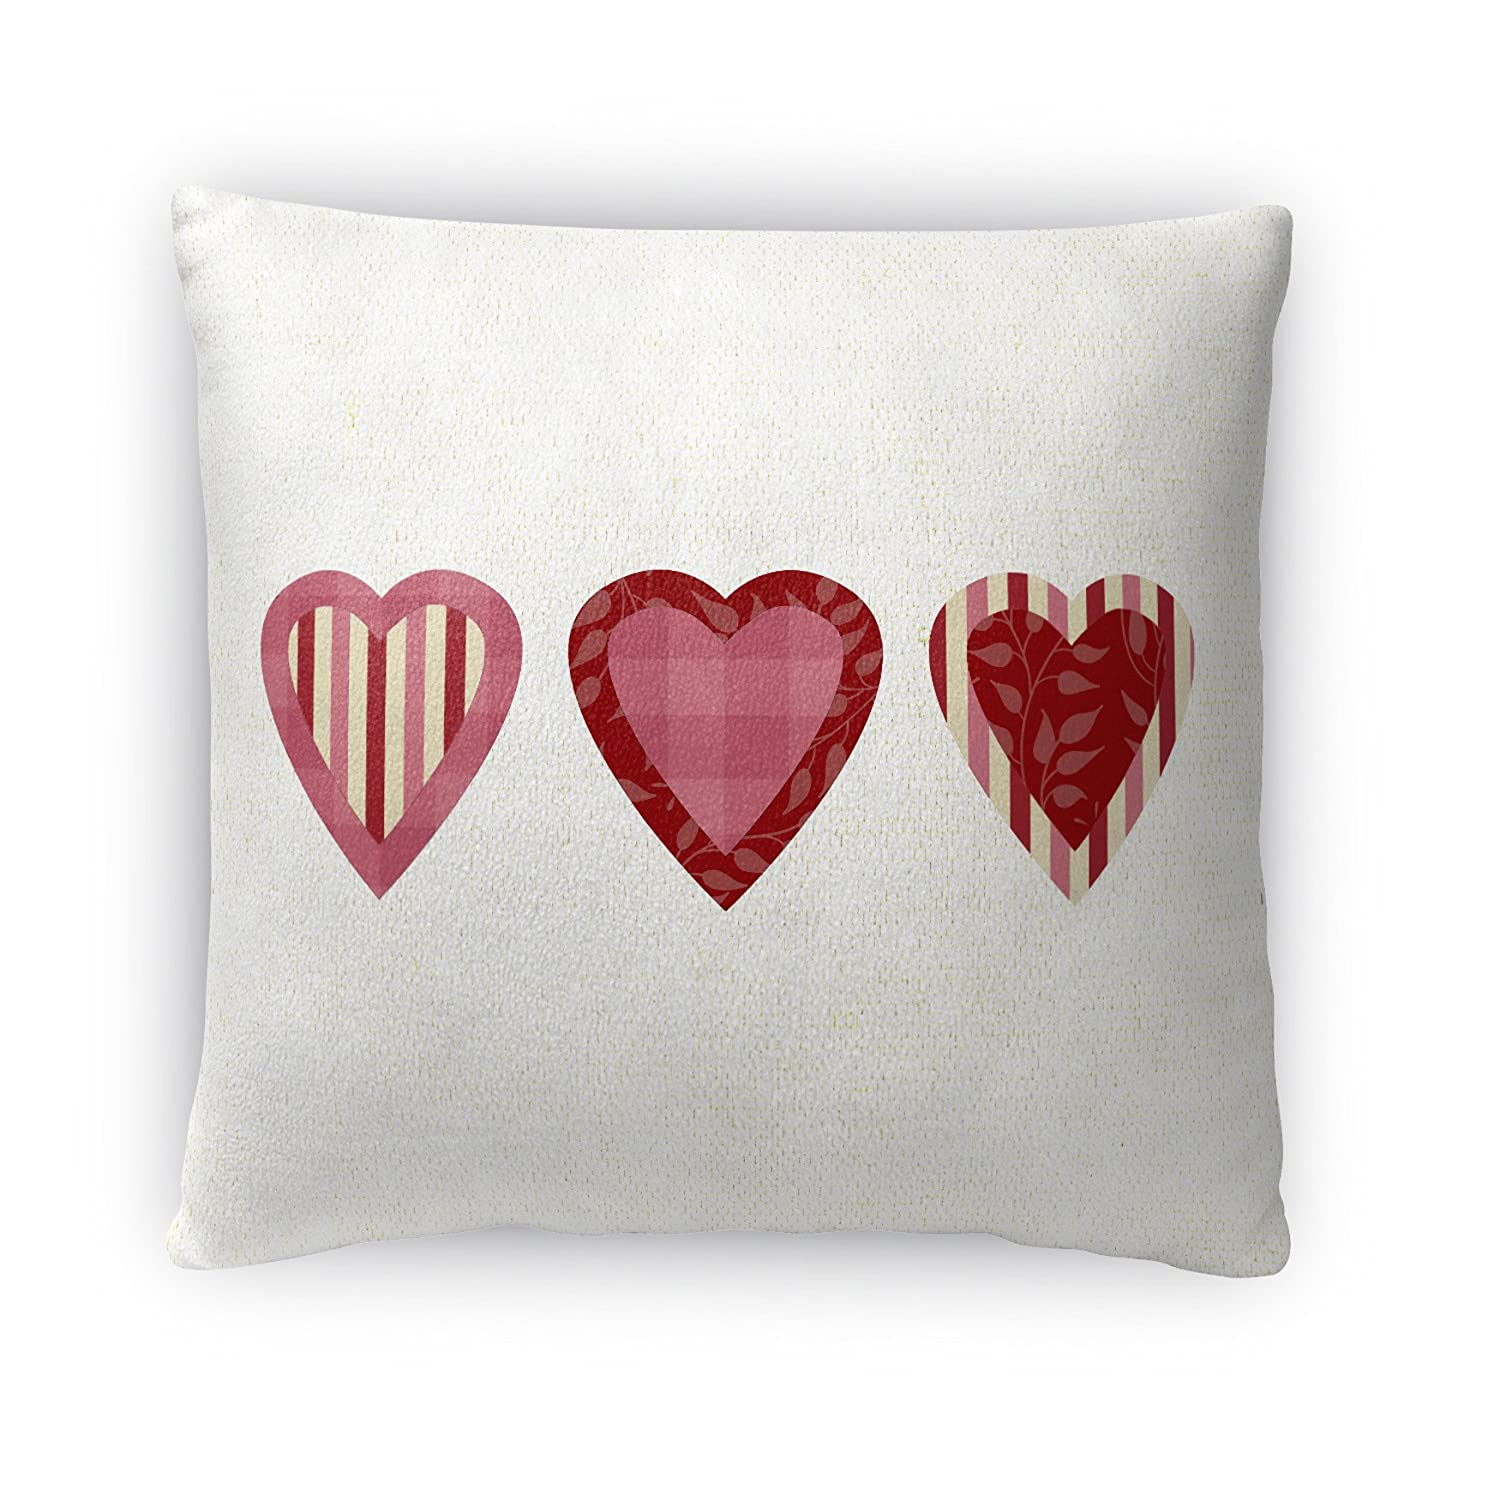 - TRADITIONS Collection TELAVC8096FBS18 KAVKA Designs 3 Hearts Fleece Throw Pillow, Pink//Red Size: 18X18X4 -